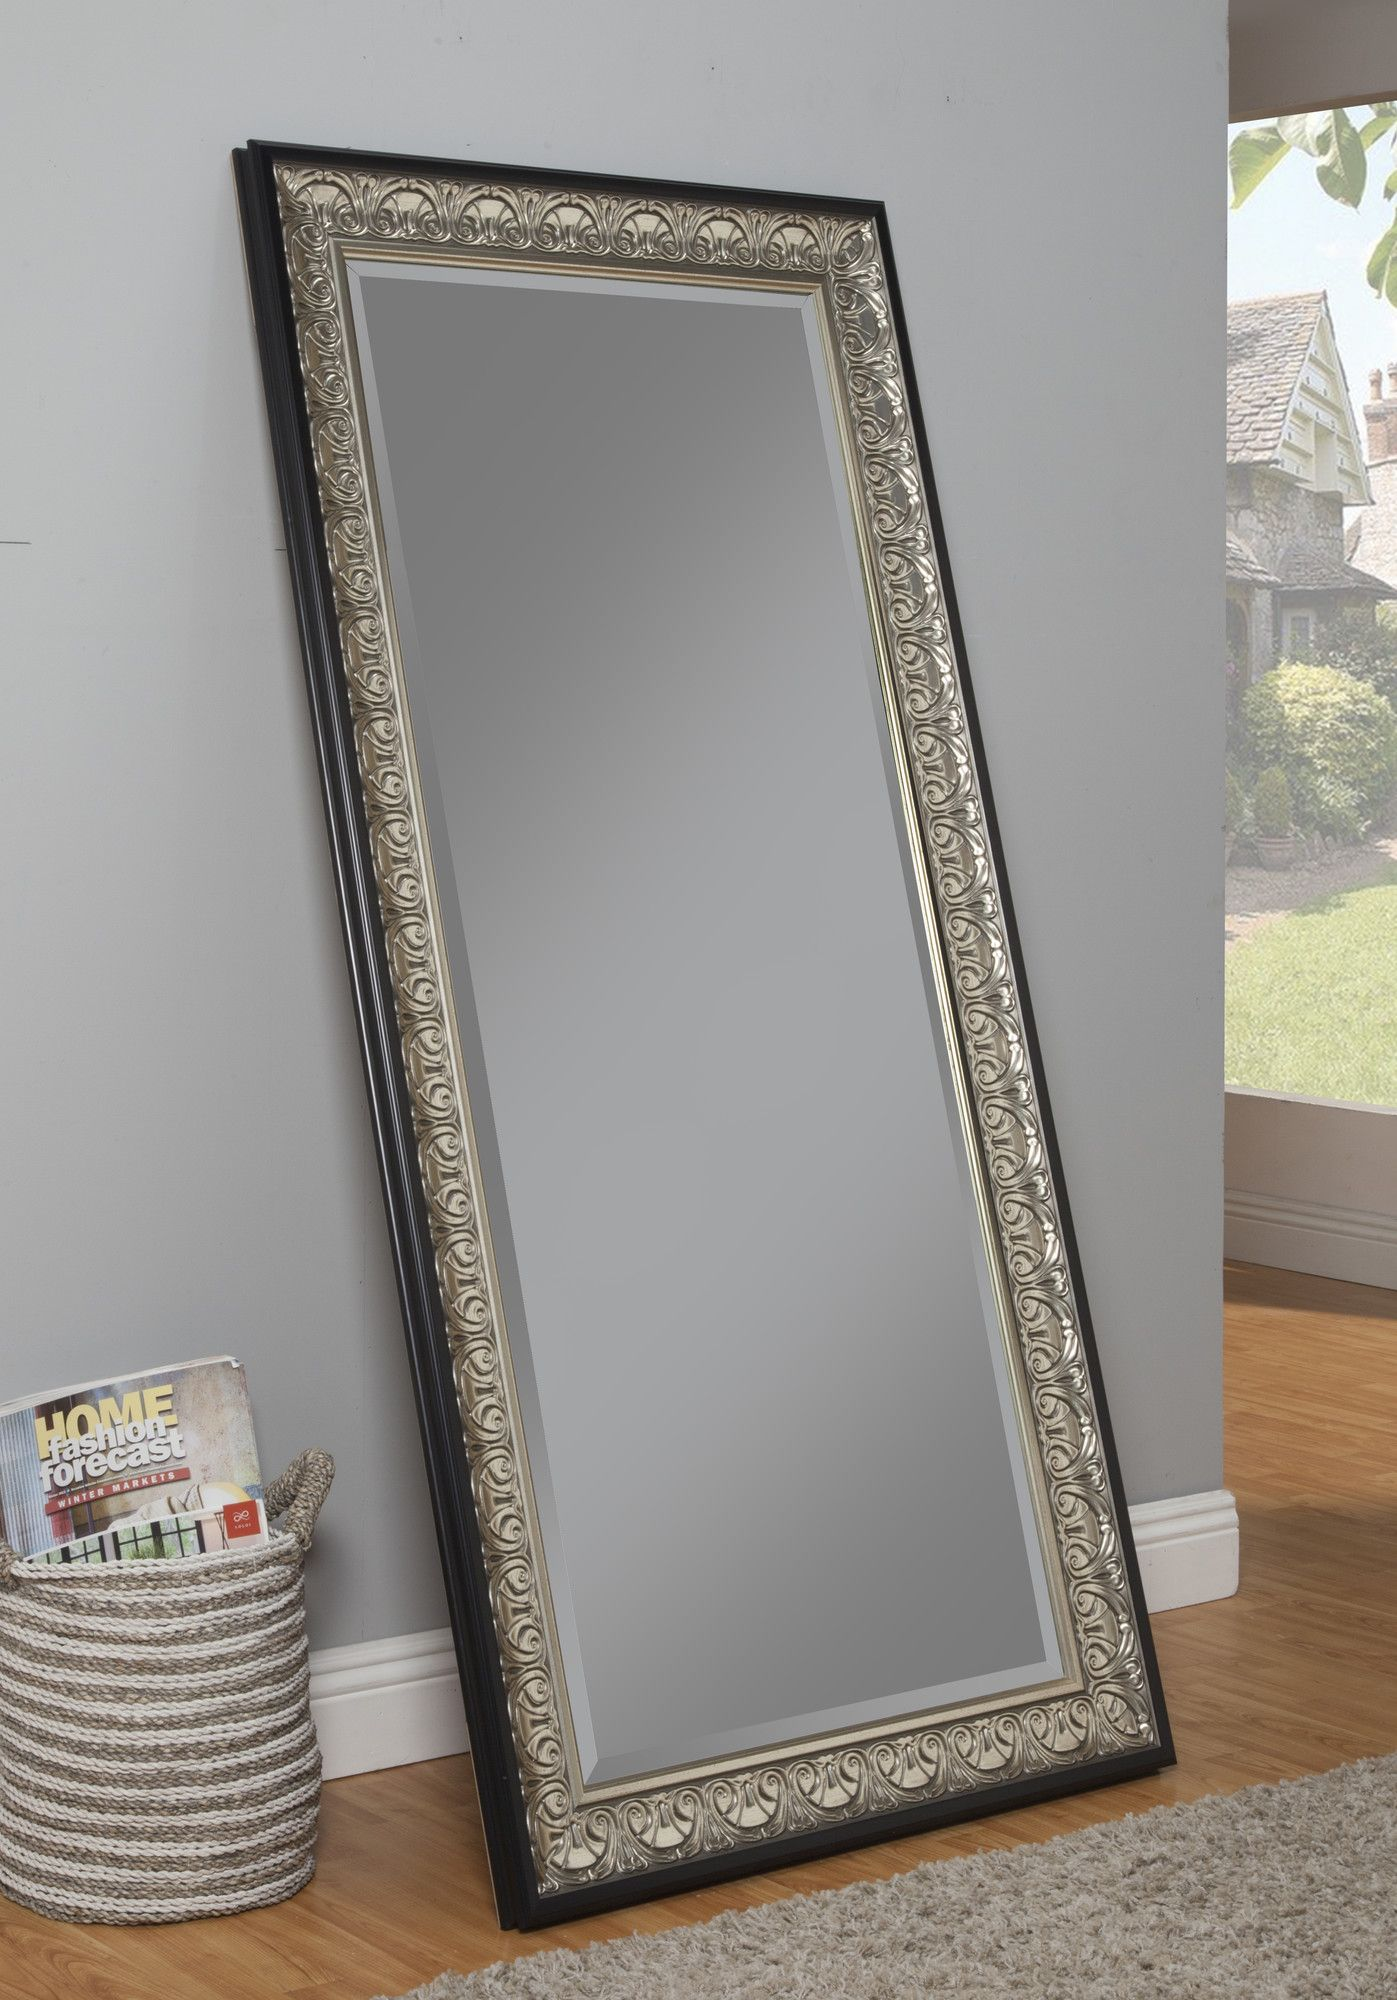 Features Can Be Used As A Leaner Mirror Or Mounted On The Wall Either Vertically Or Horizontally D Ring Brackets Already Attached For Easy Interiores Mesas